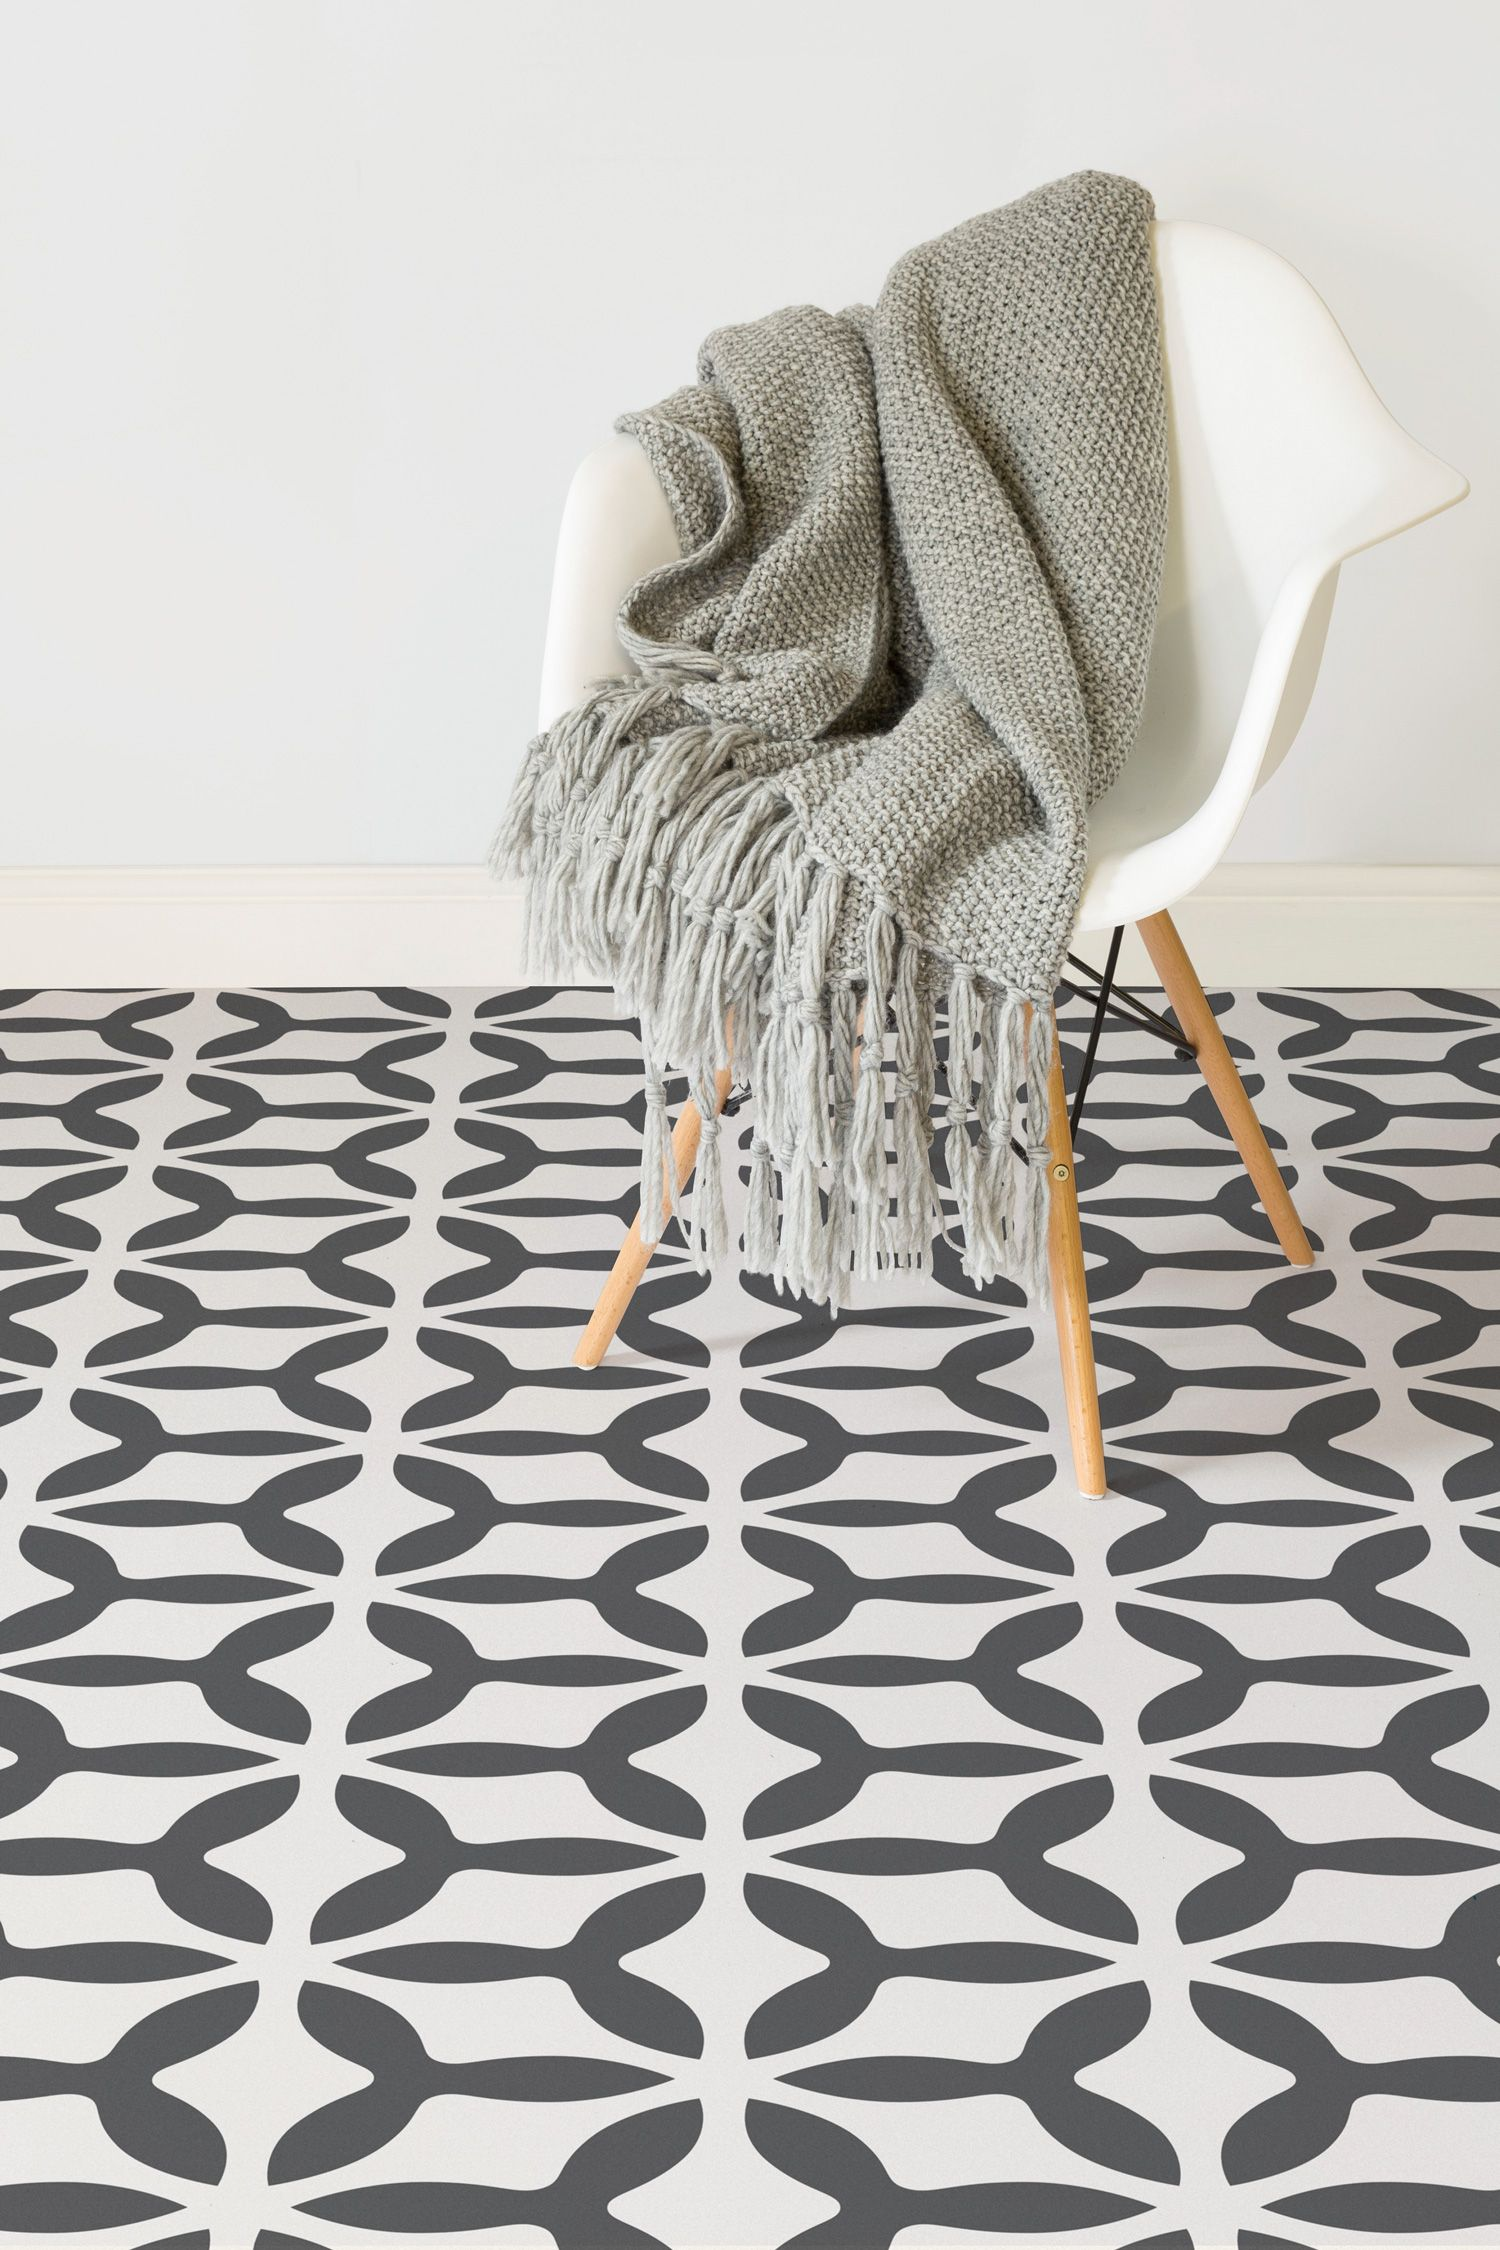 After an instant art deco look? This pattern vinyl flooring design will instil a vintage feel to your home. Simple black and cream help to give a wonderful contrast that is stylish yet versatile.